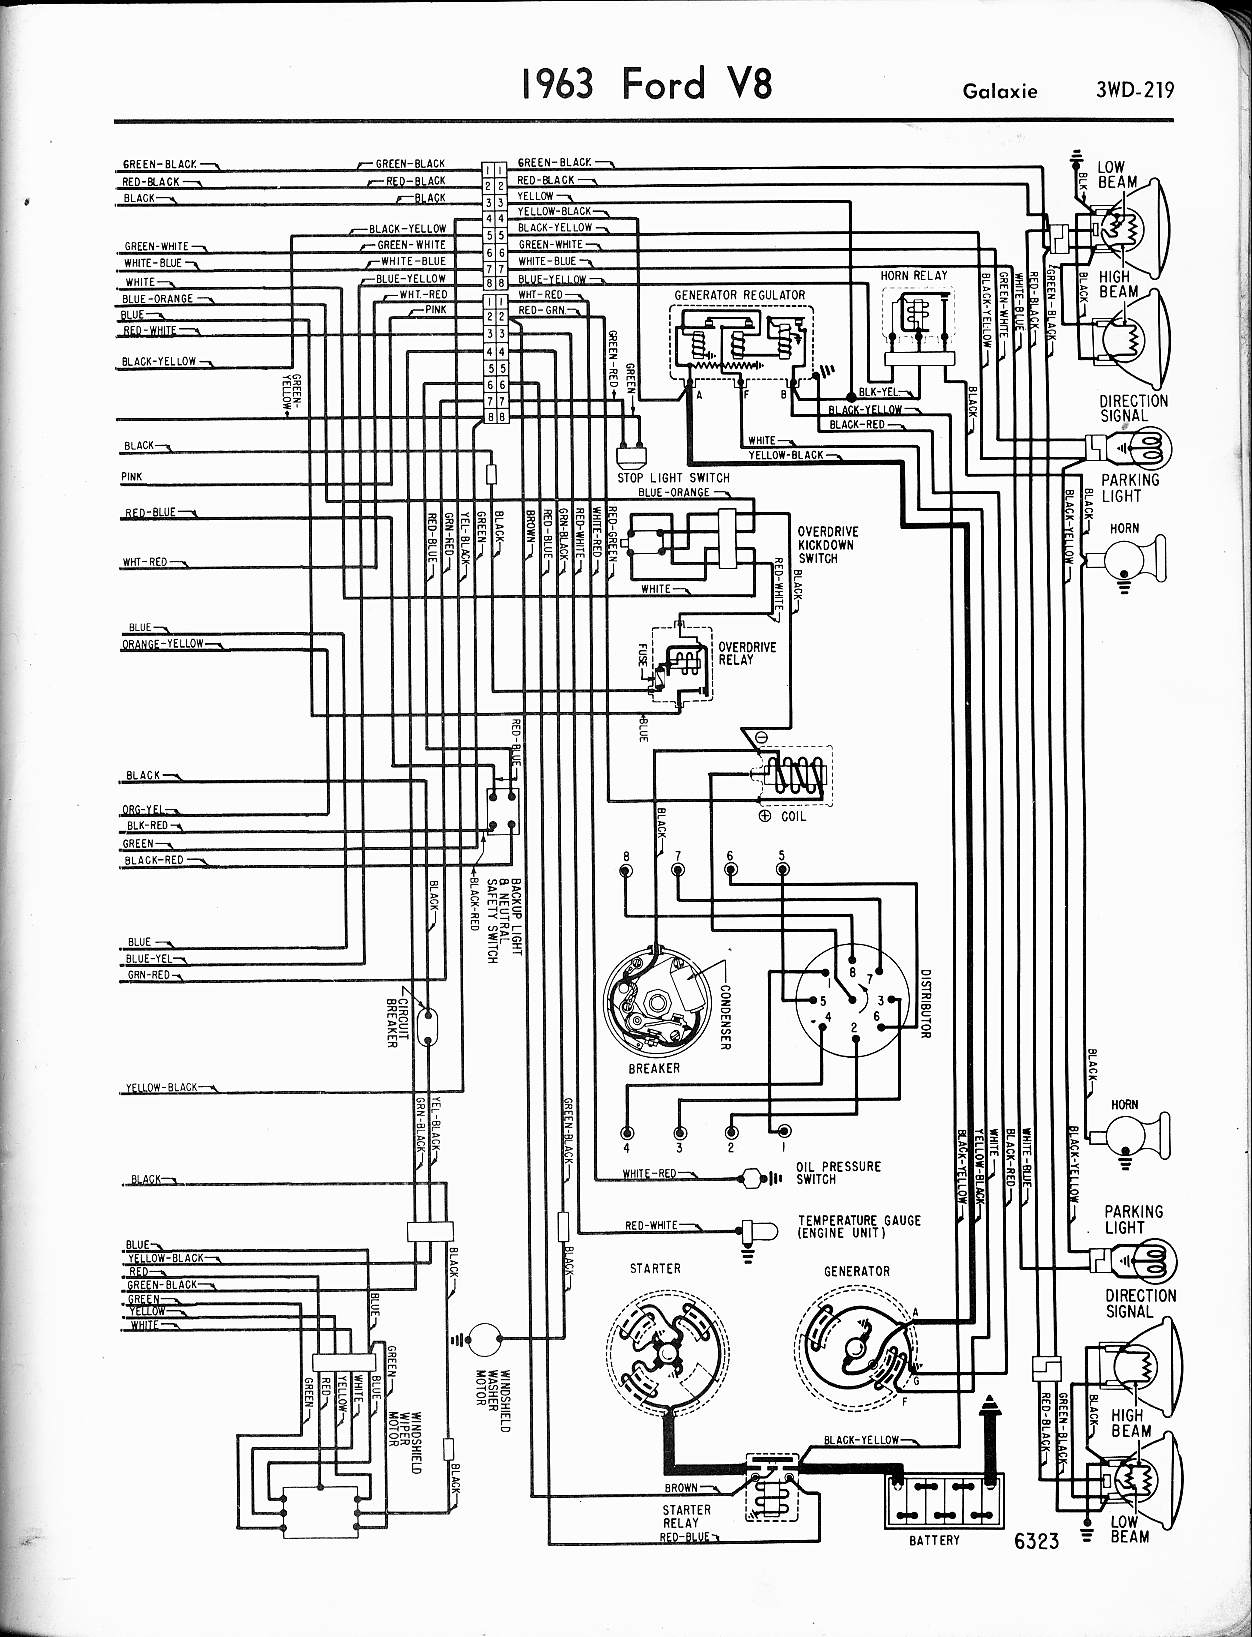 1968 Ford Convertible Wiring Diagram Circuit Schematic 861 Starting Know About 1996 Ranger